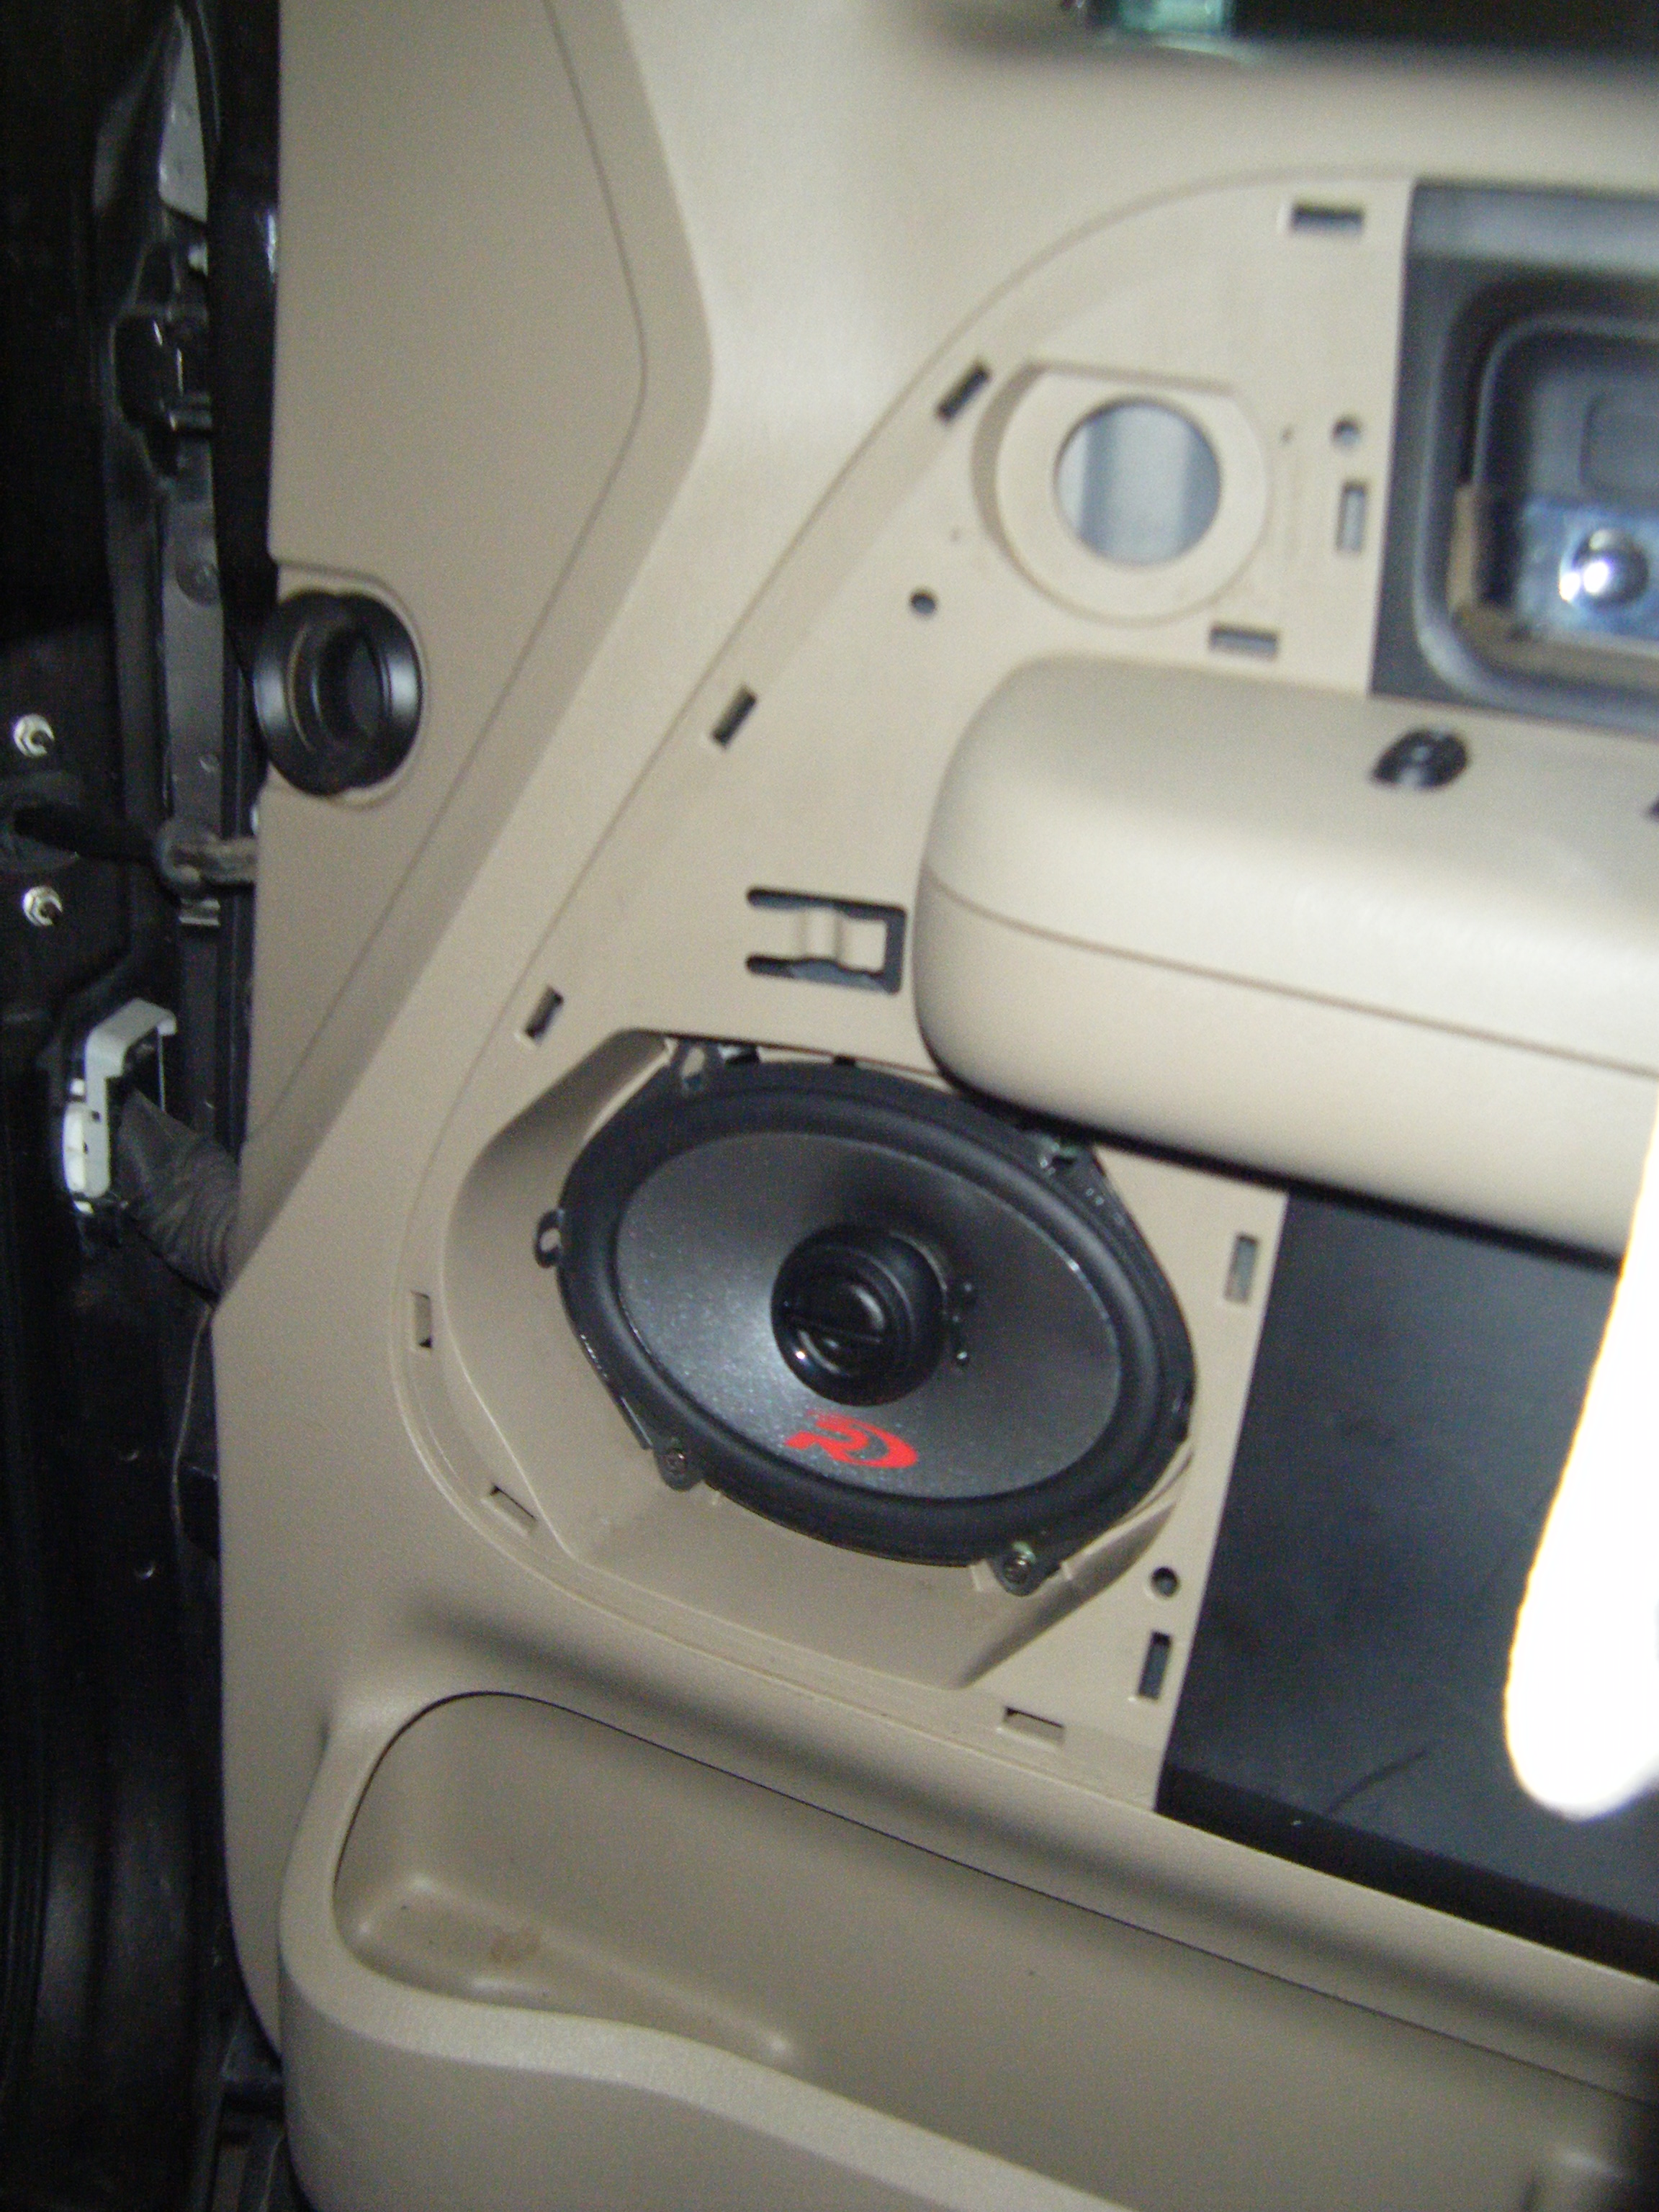 F150 Door Speakers & 2006 Ford F150 Sony Xplod Speakers. View Photo Gallery | 12 Photos